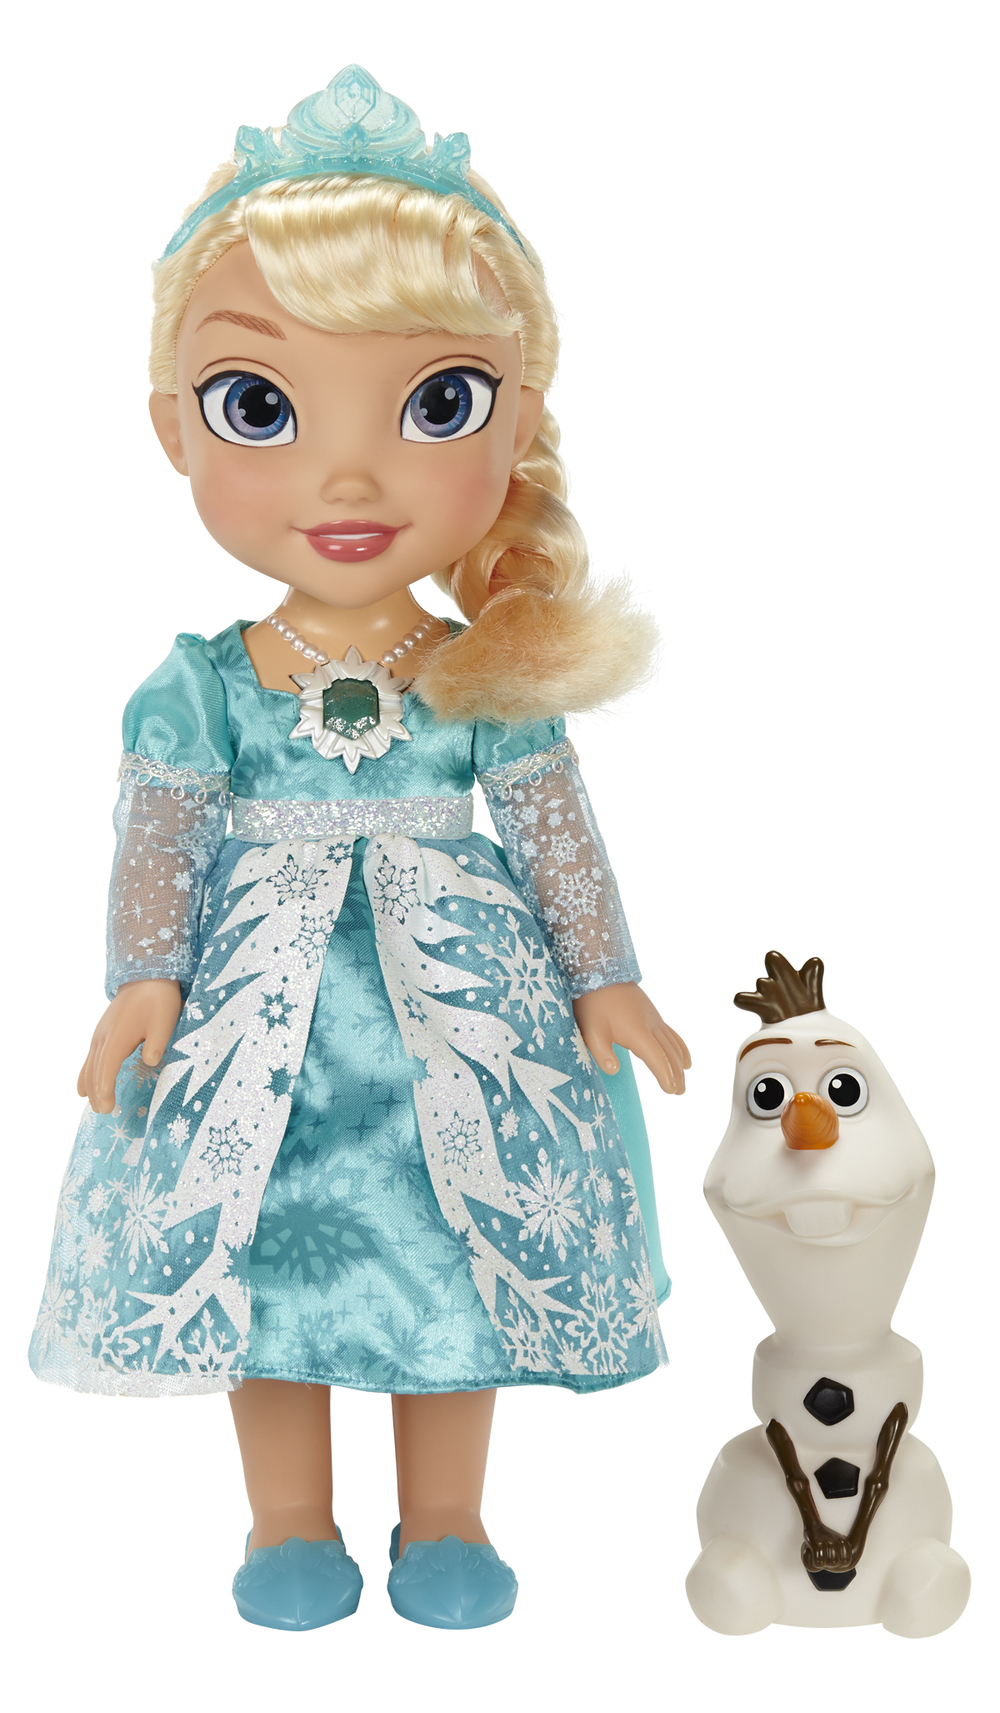 "isney Frozen Snow Glow Elsa. Credit: Toys""R""Us."